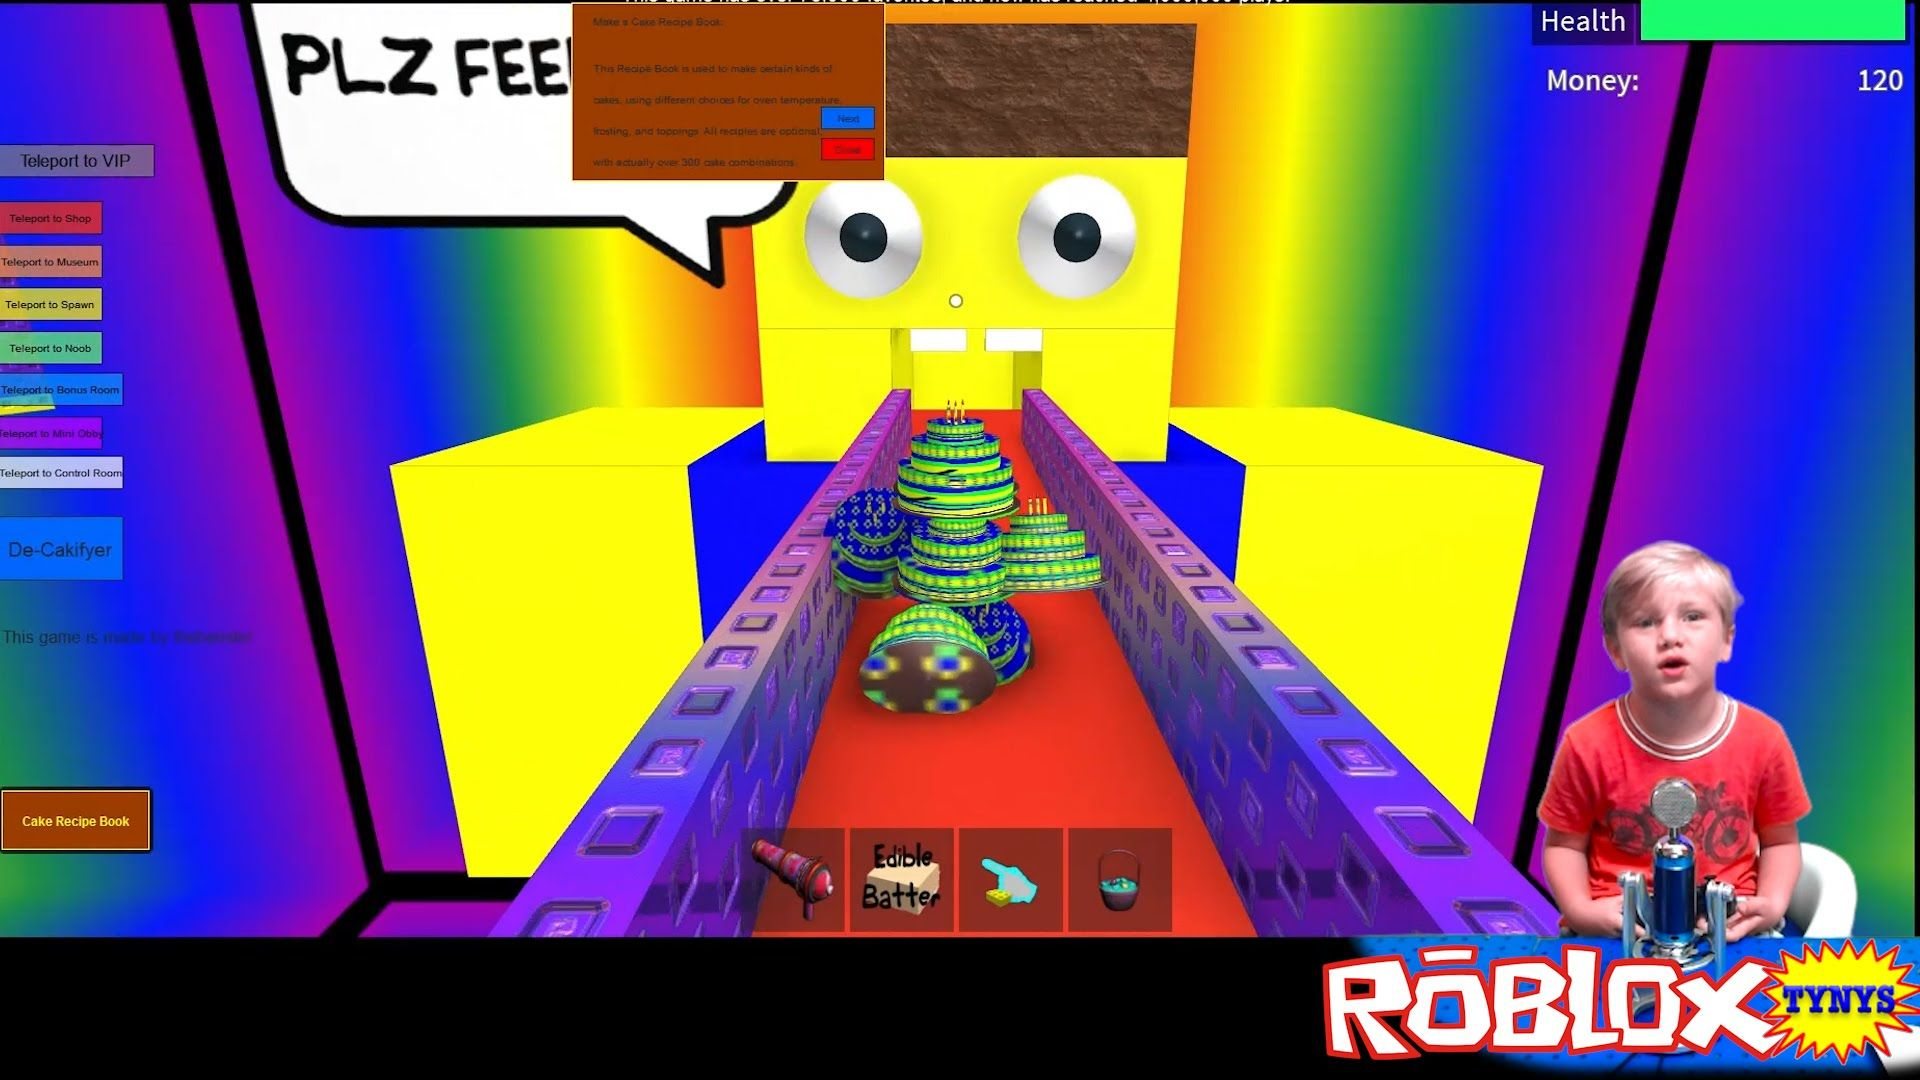 Make A Cake And Feed The Giant Noob Roblox Youtube - Tynys Bake A Cake Roblox Feed The Giant Noob Roblox